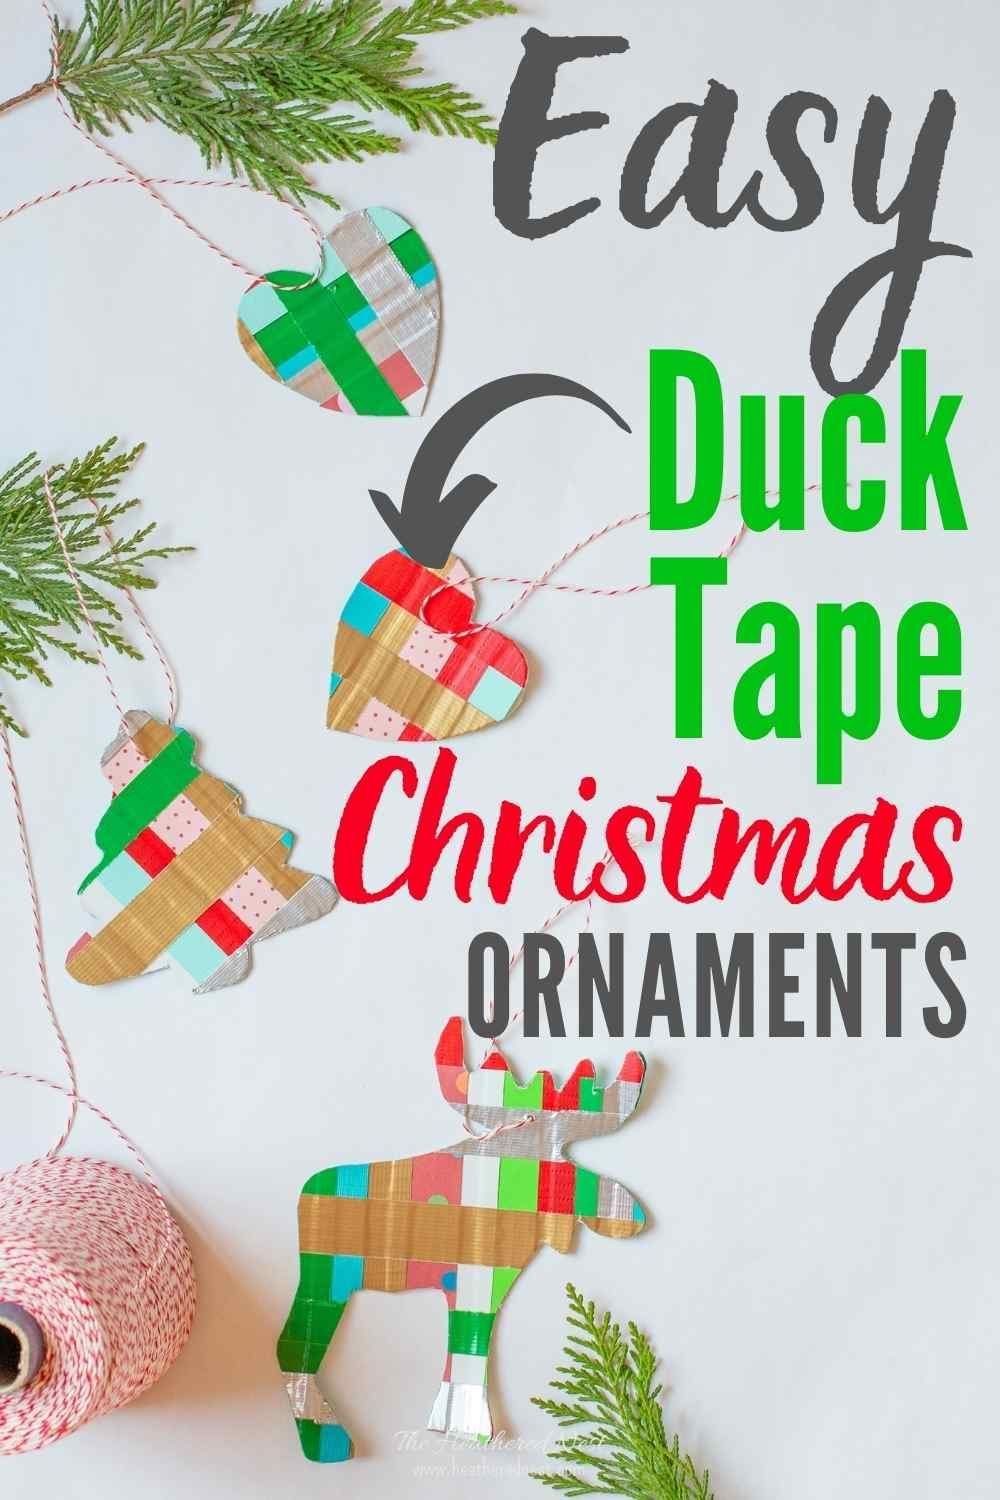 Easy Colored Duct Tape Christmas Ornaments In 2020 Easy Christmas Diy Christmas Ornaments Diy Christmas Ornaments